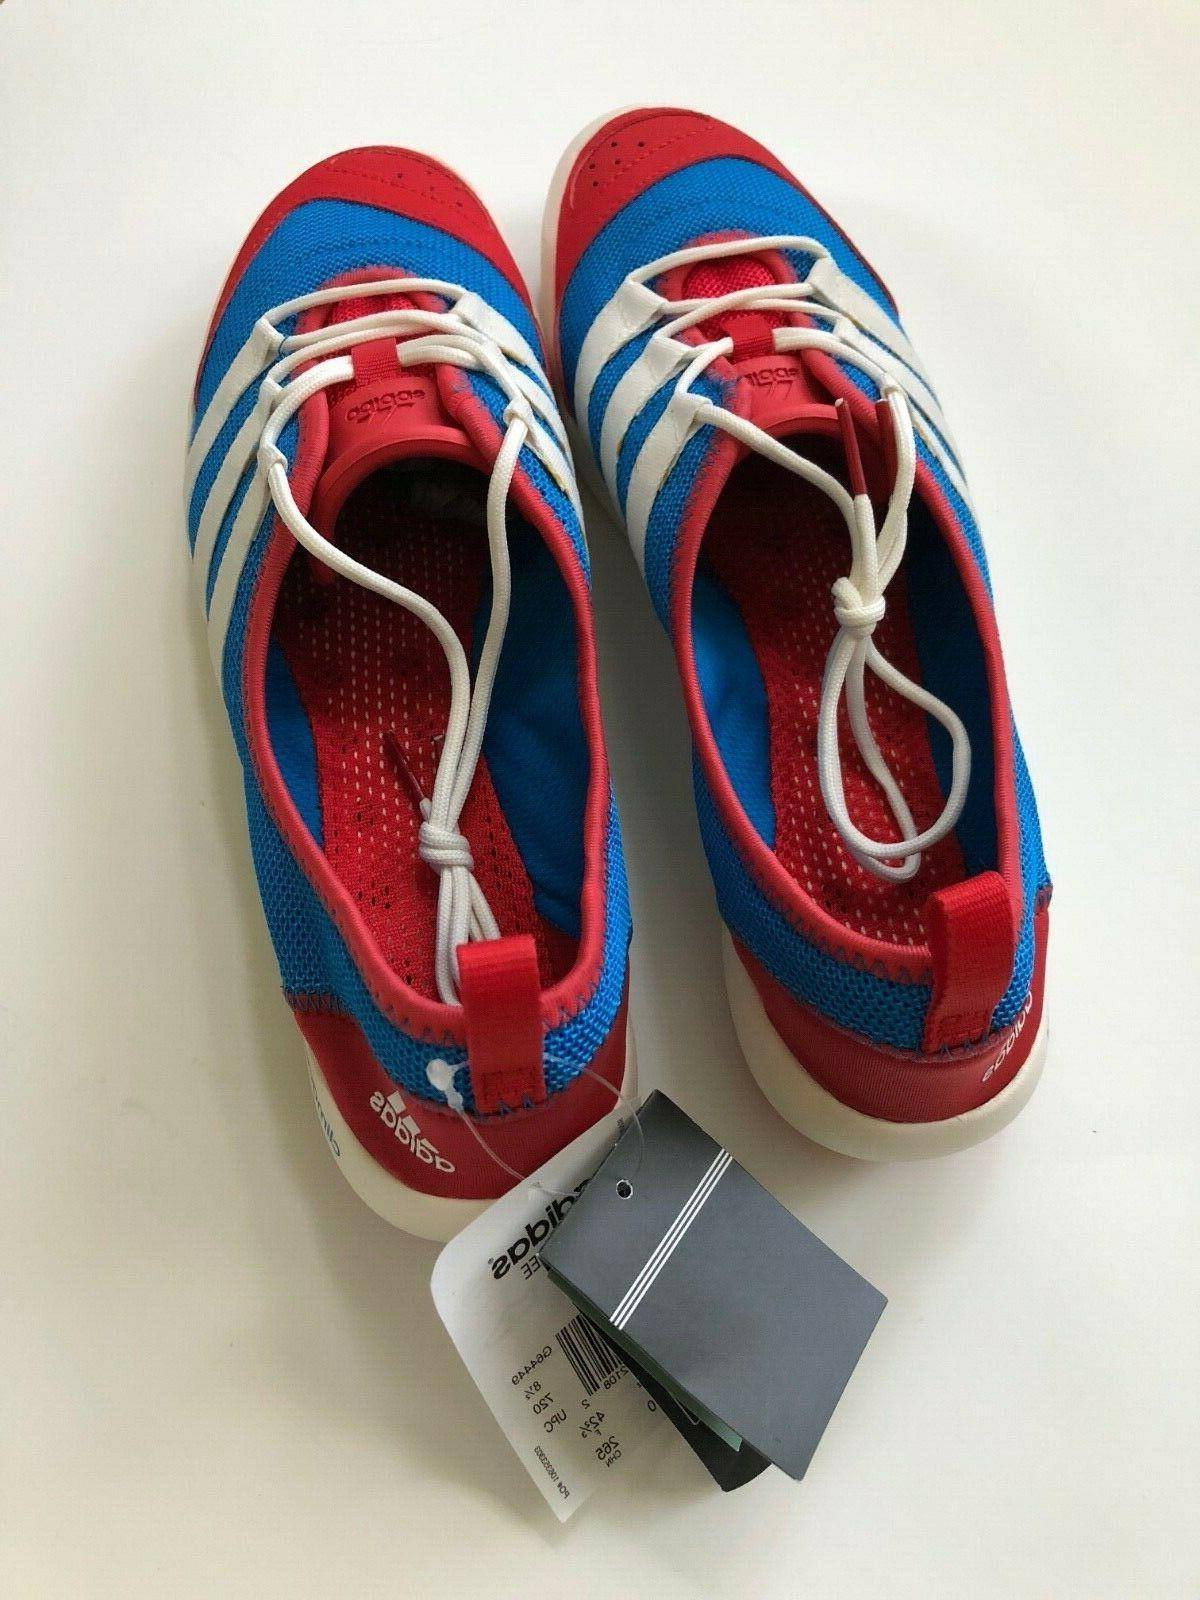 Adidas Climacool Boat Water & Size 10 US NEW